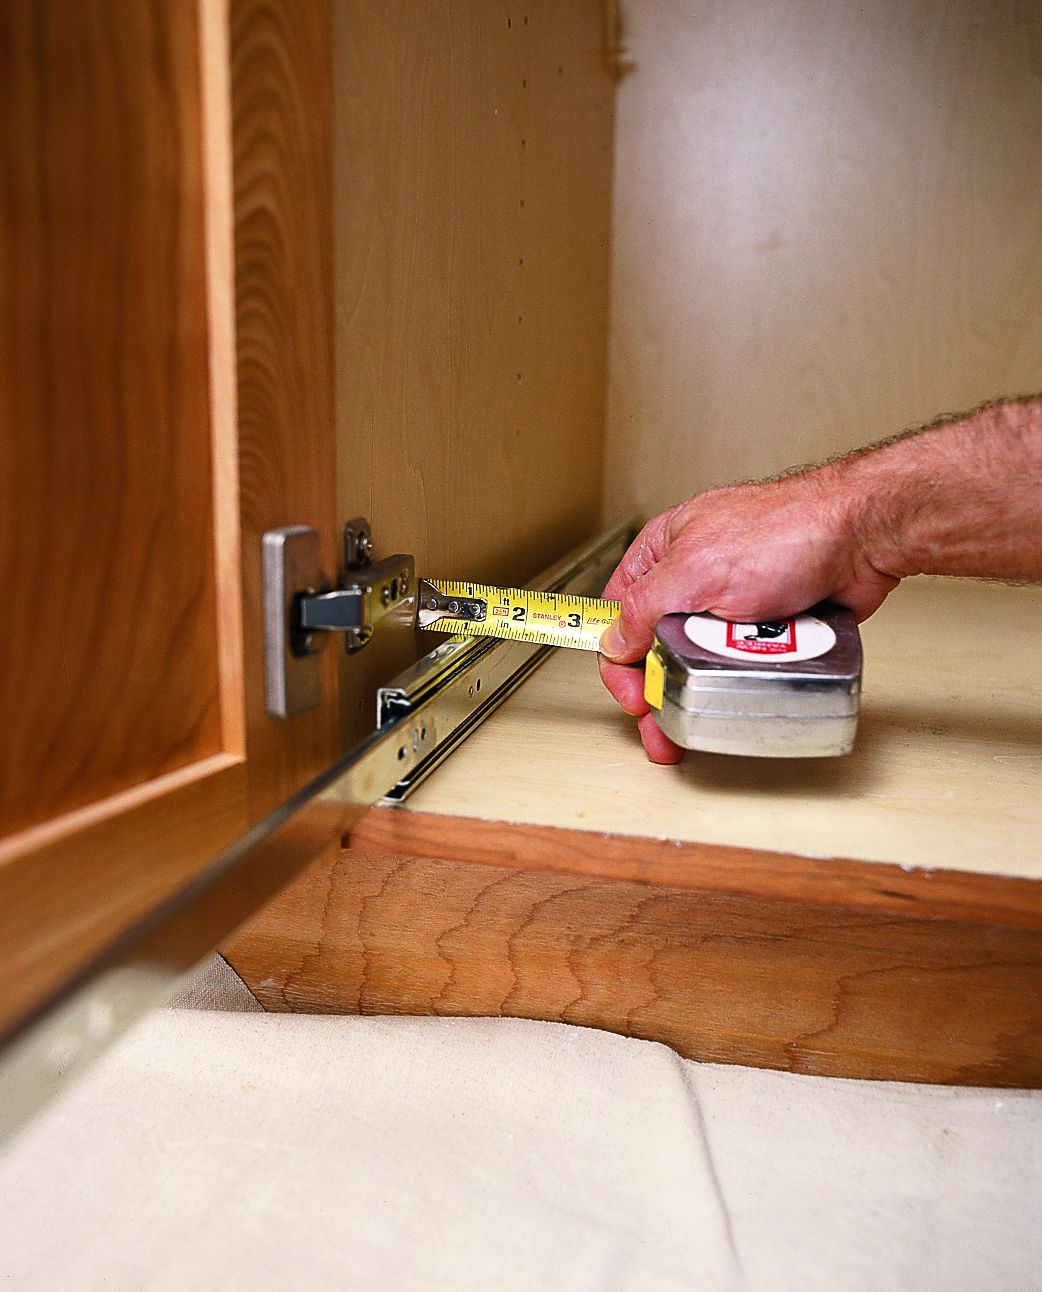 Man Measures Kitchen Cabinet With Tape Measure  For Pull Out Shelves